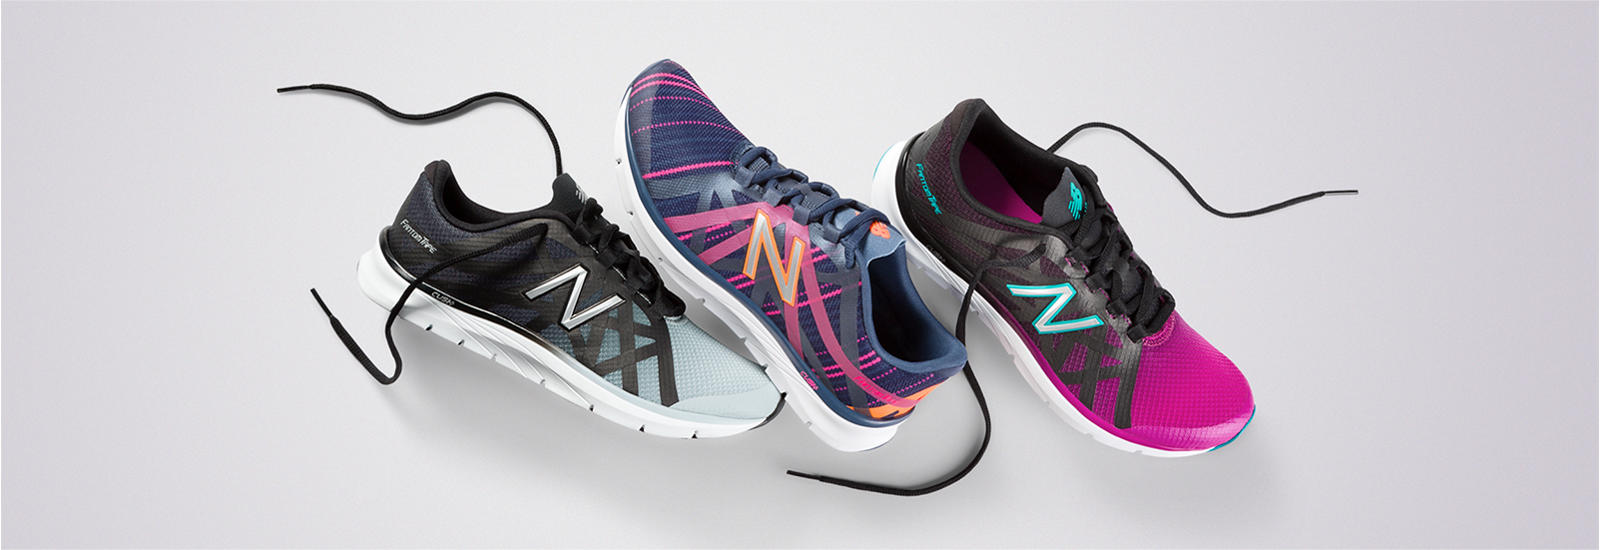 New Balance 811v2 Training Shoes